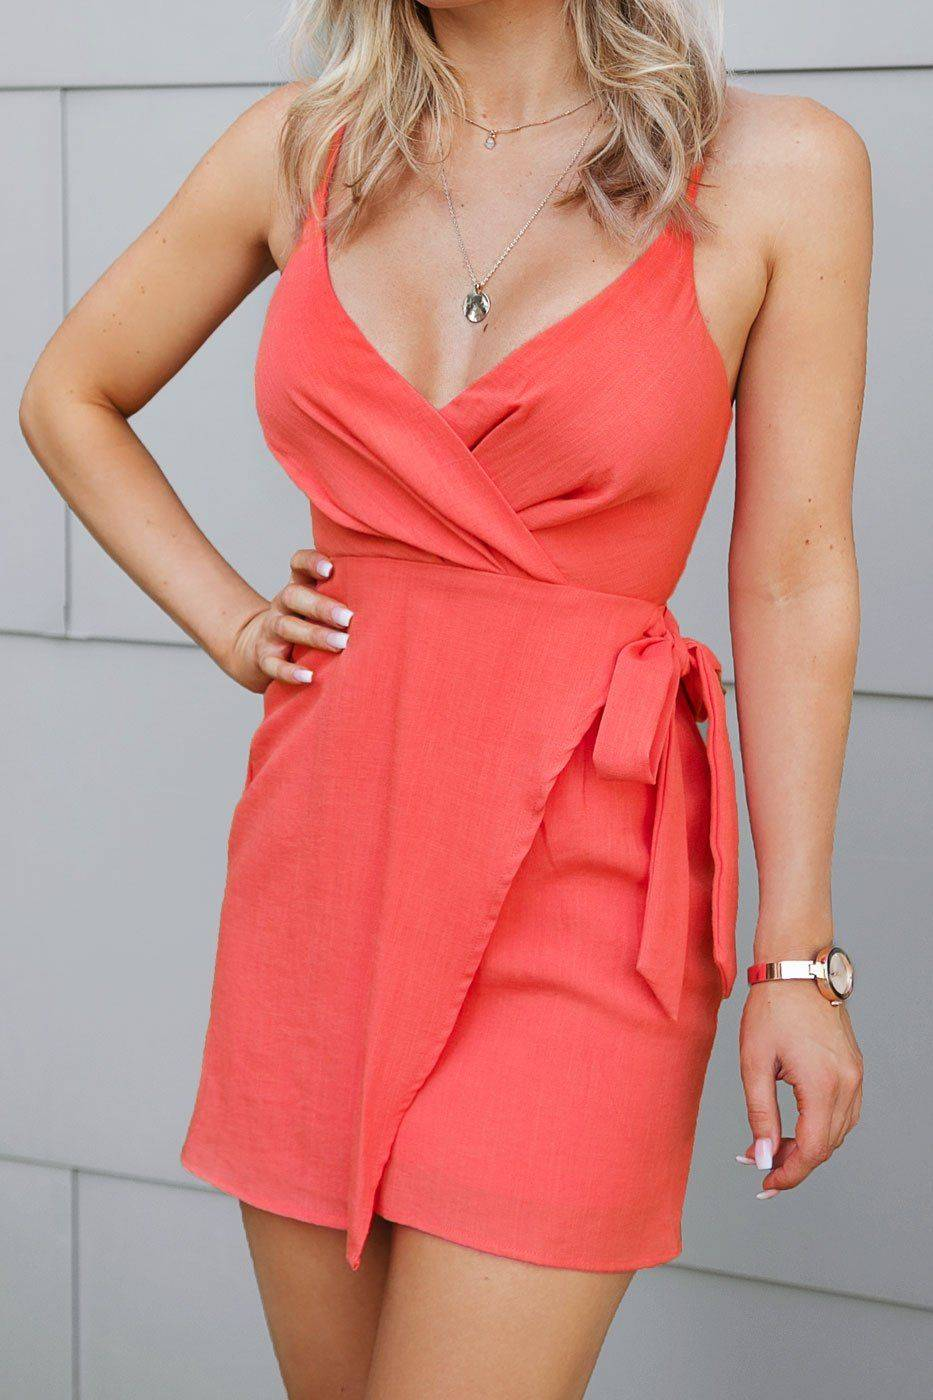 Candy That's A Wrap Coral Mini Dress  - G1314 Coral Small